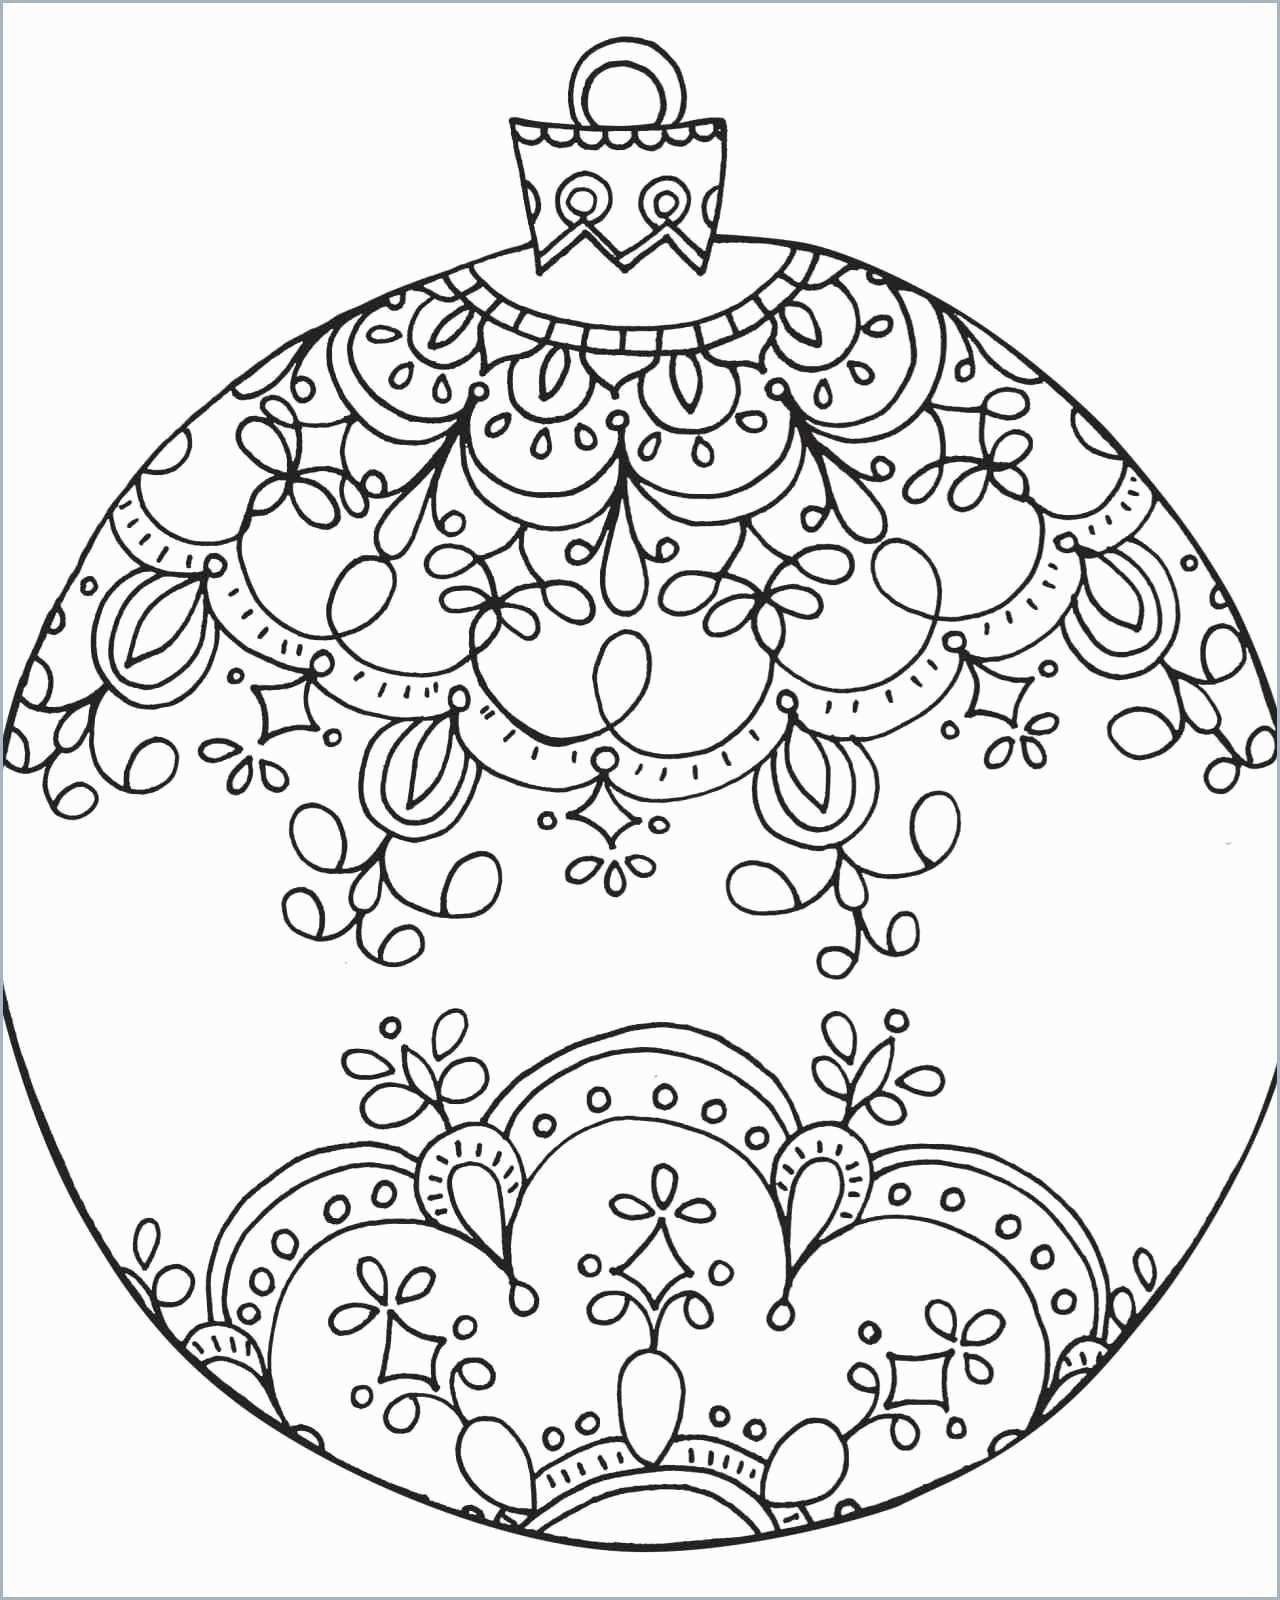 Math Coloring Worksheets 5th Grade Elegant Coloring Pages 5th Grade B Printable Christmas Coloring Pages Christmas Coloring Books Free Christmas Coloring Pages